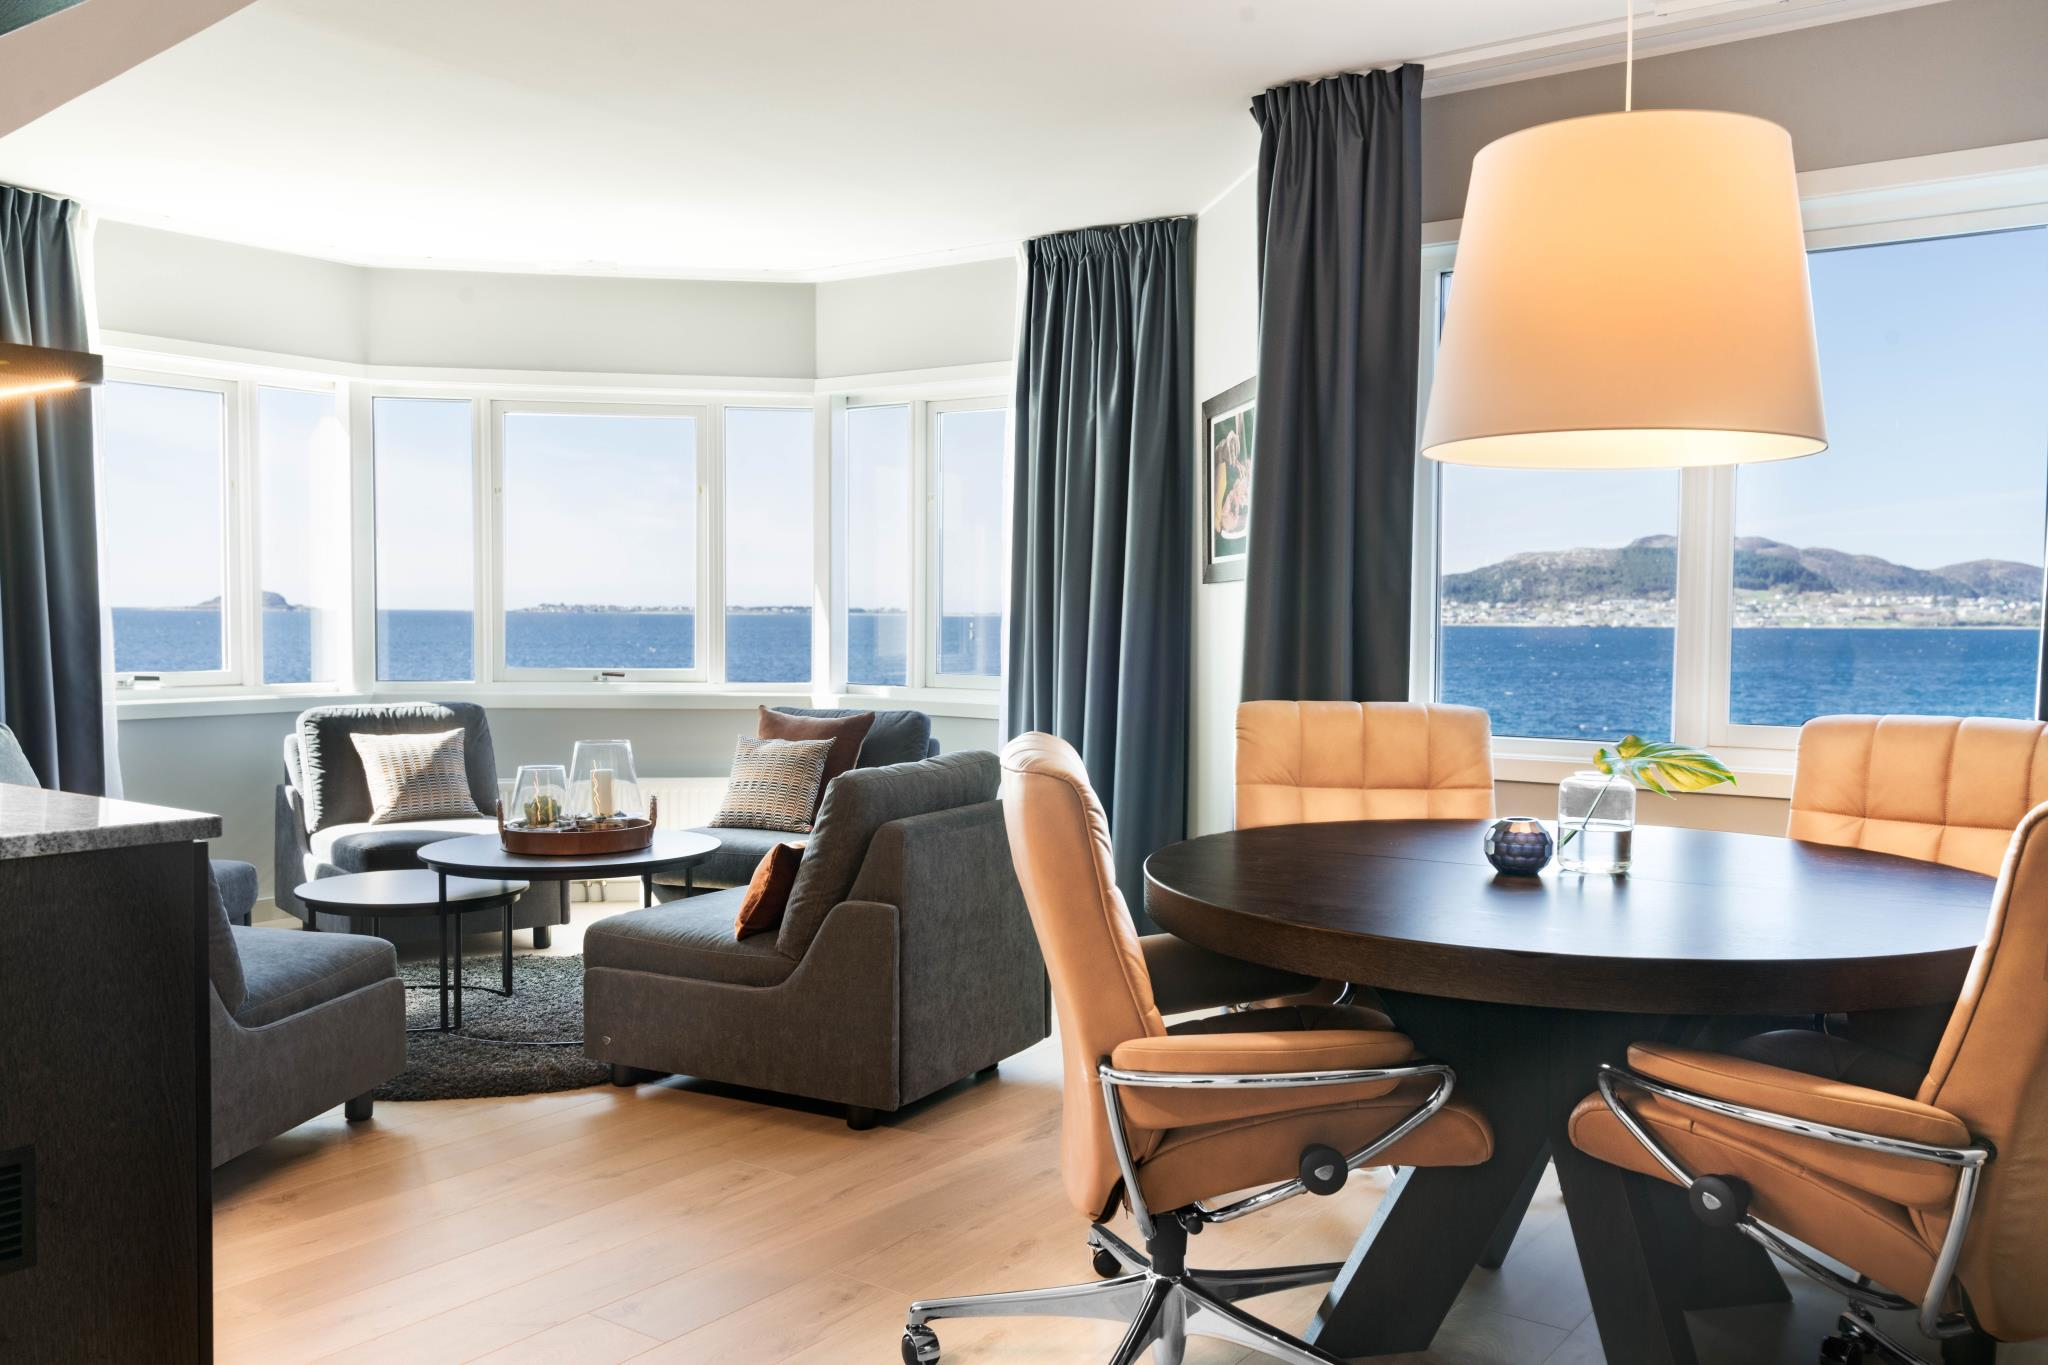 Suite Vista Mare (Suite Sea View)